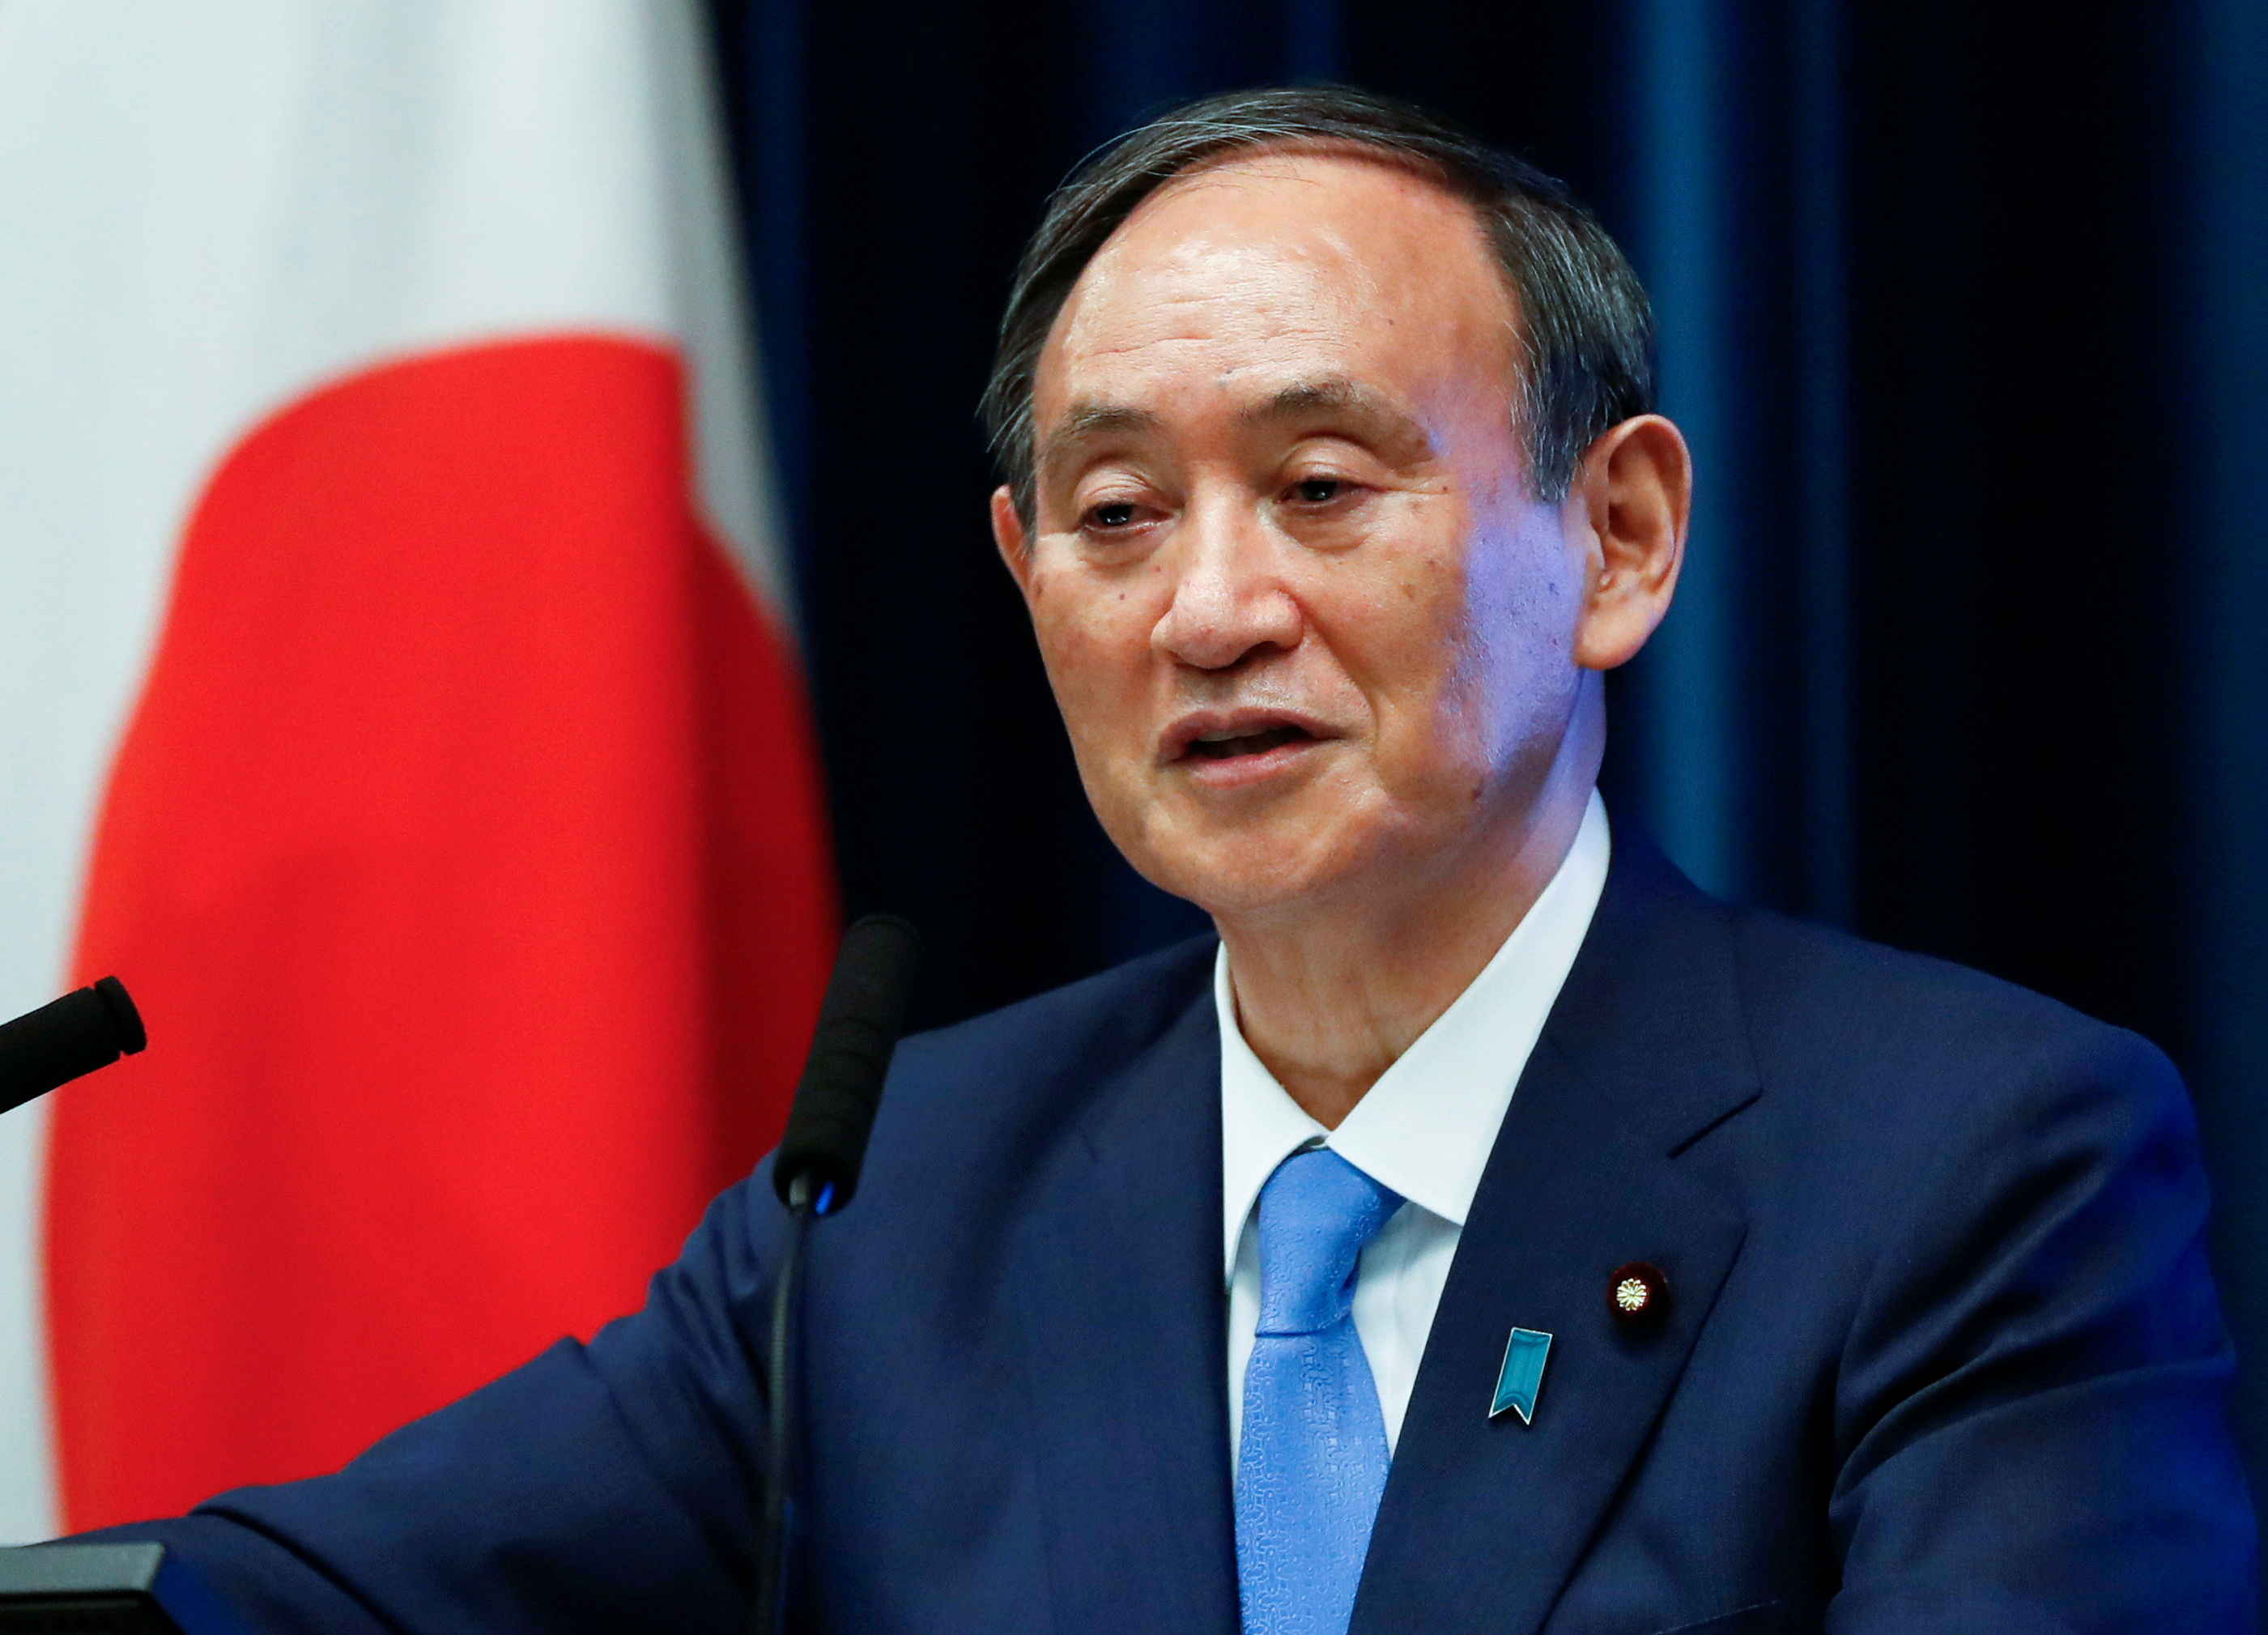 Japan's Prime Minister Yoshihide Suga attends a news conference on Japan's response to the coronavirus disease (COVID-19) outbreak, at his official residence in Tokyo, Japan, June 17, 2021. REUTERS/Issei Kato/Pool